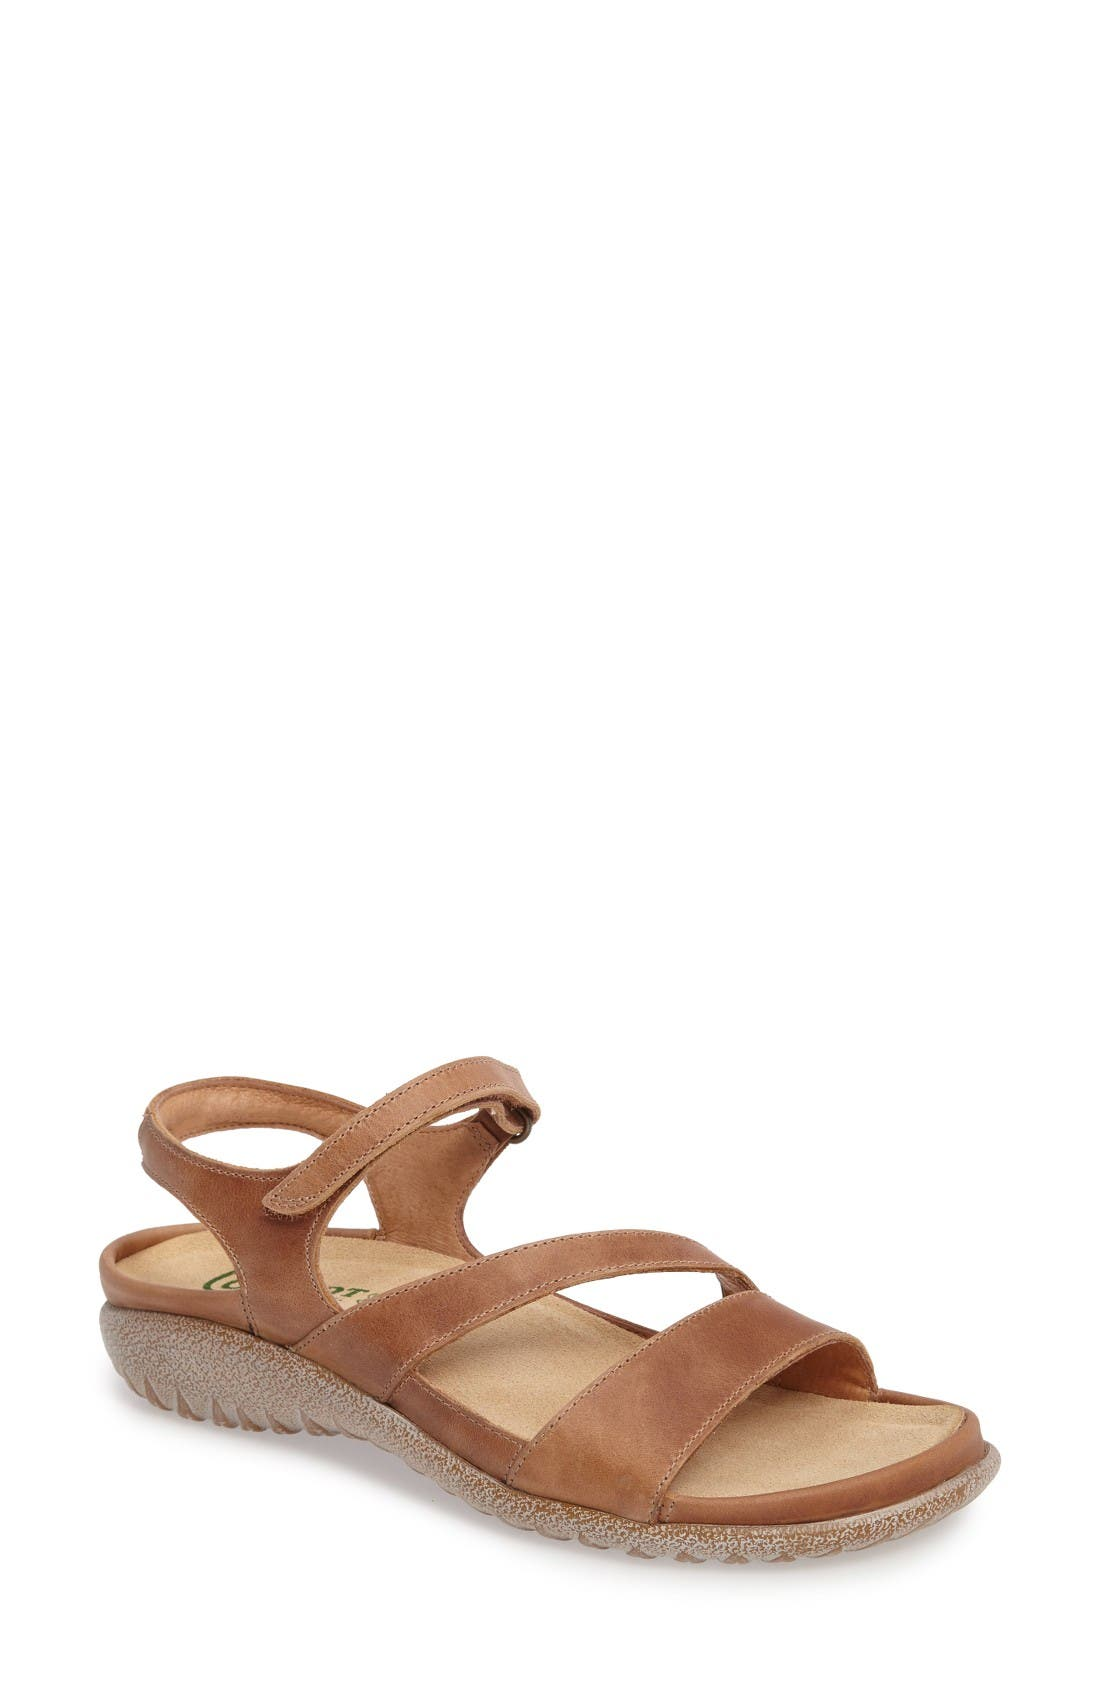 Alternate Image 1 Selected - Naot 'Etera' Sandal